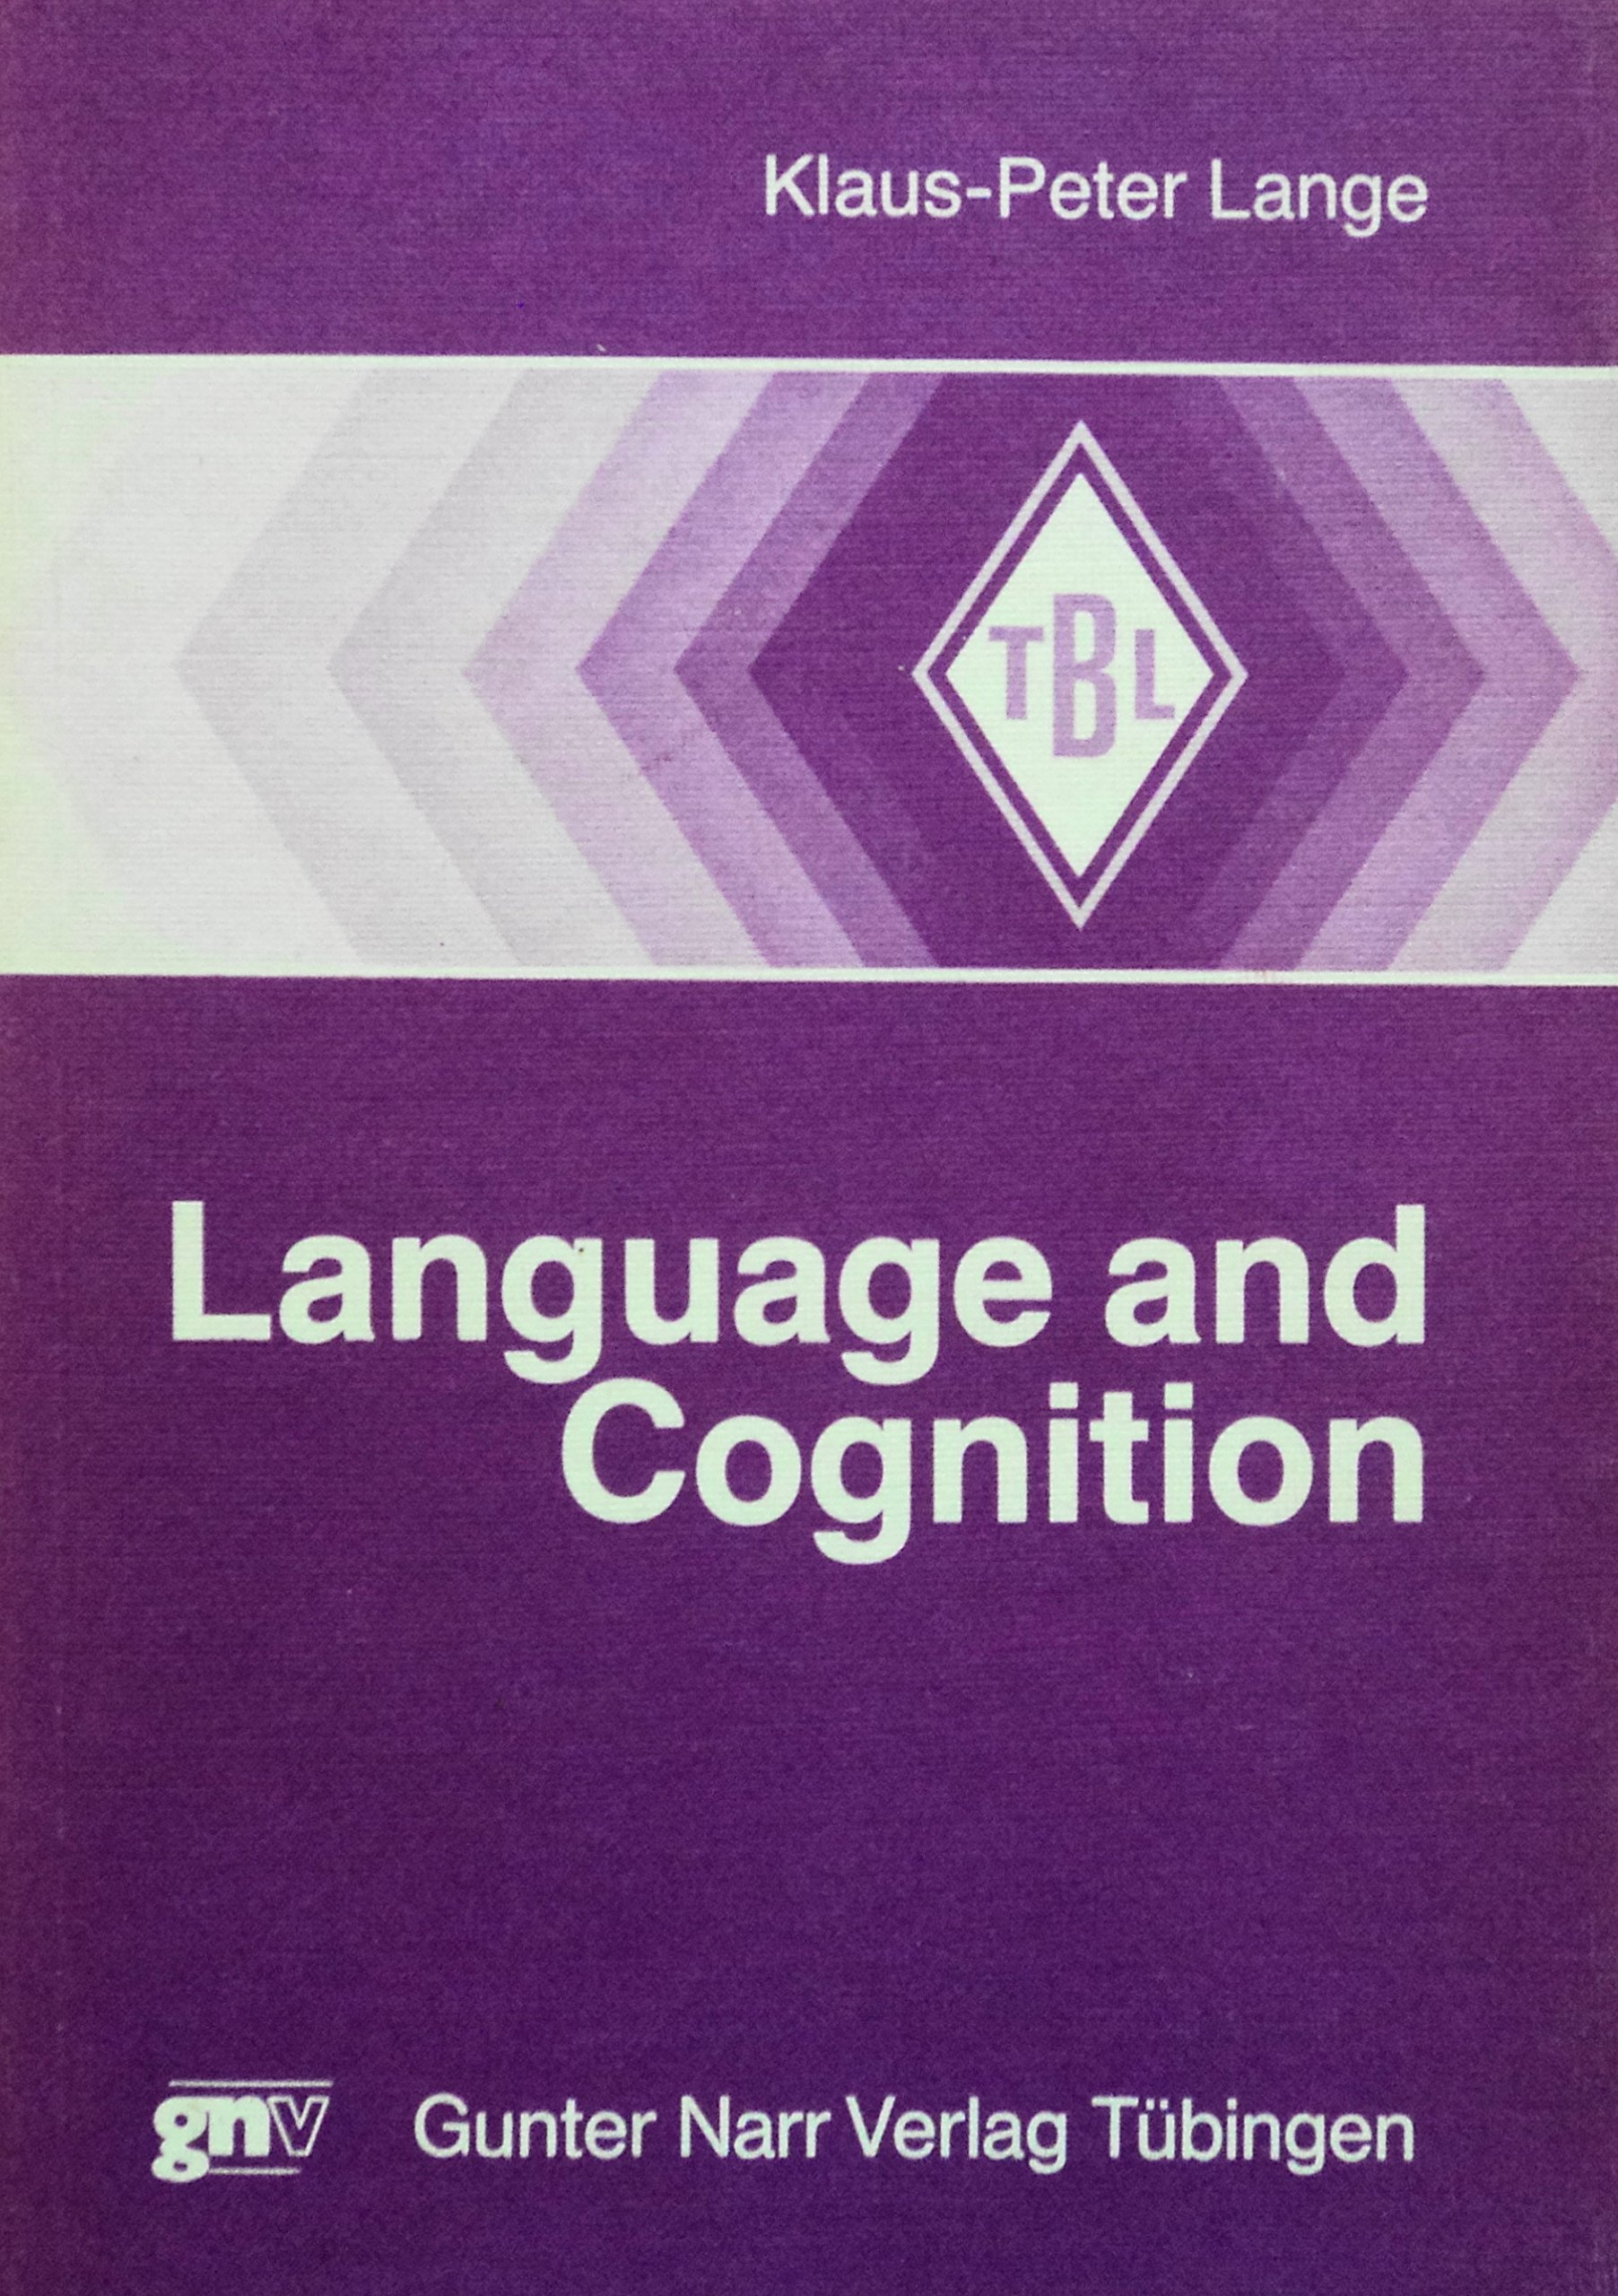 how can language affect cognition